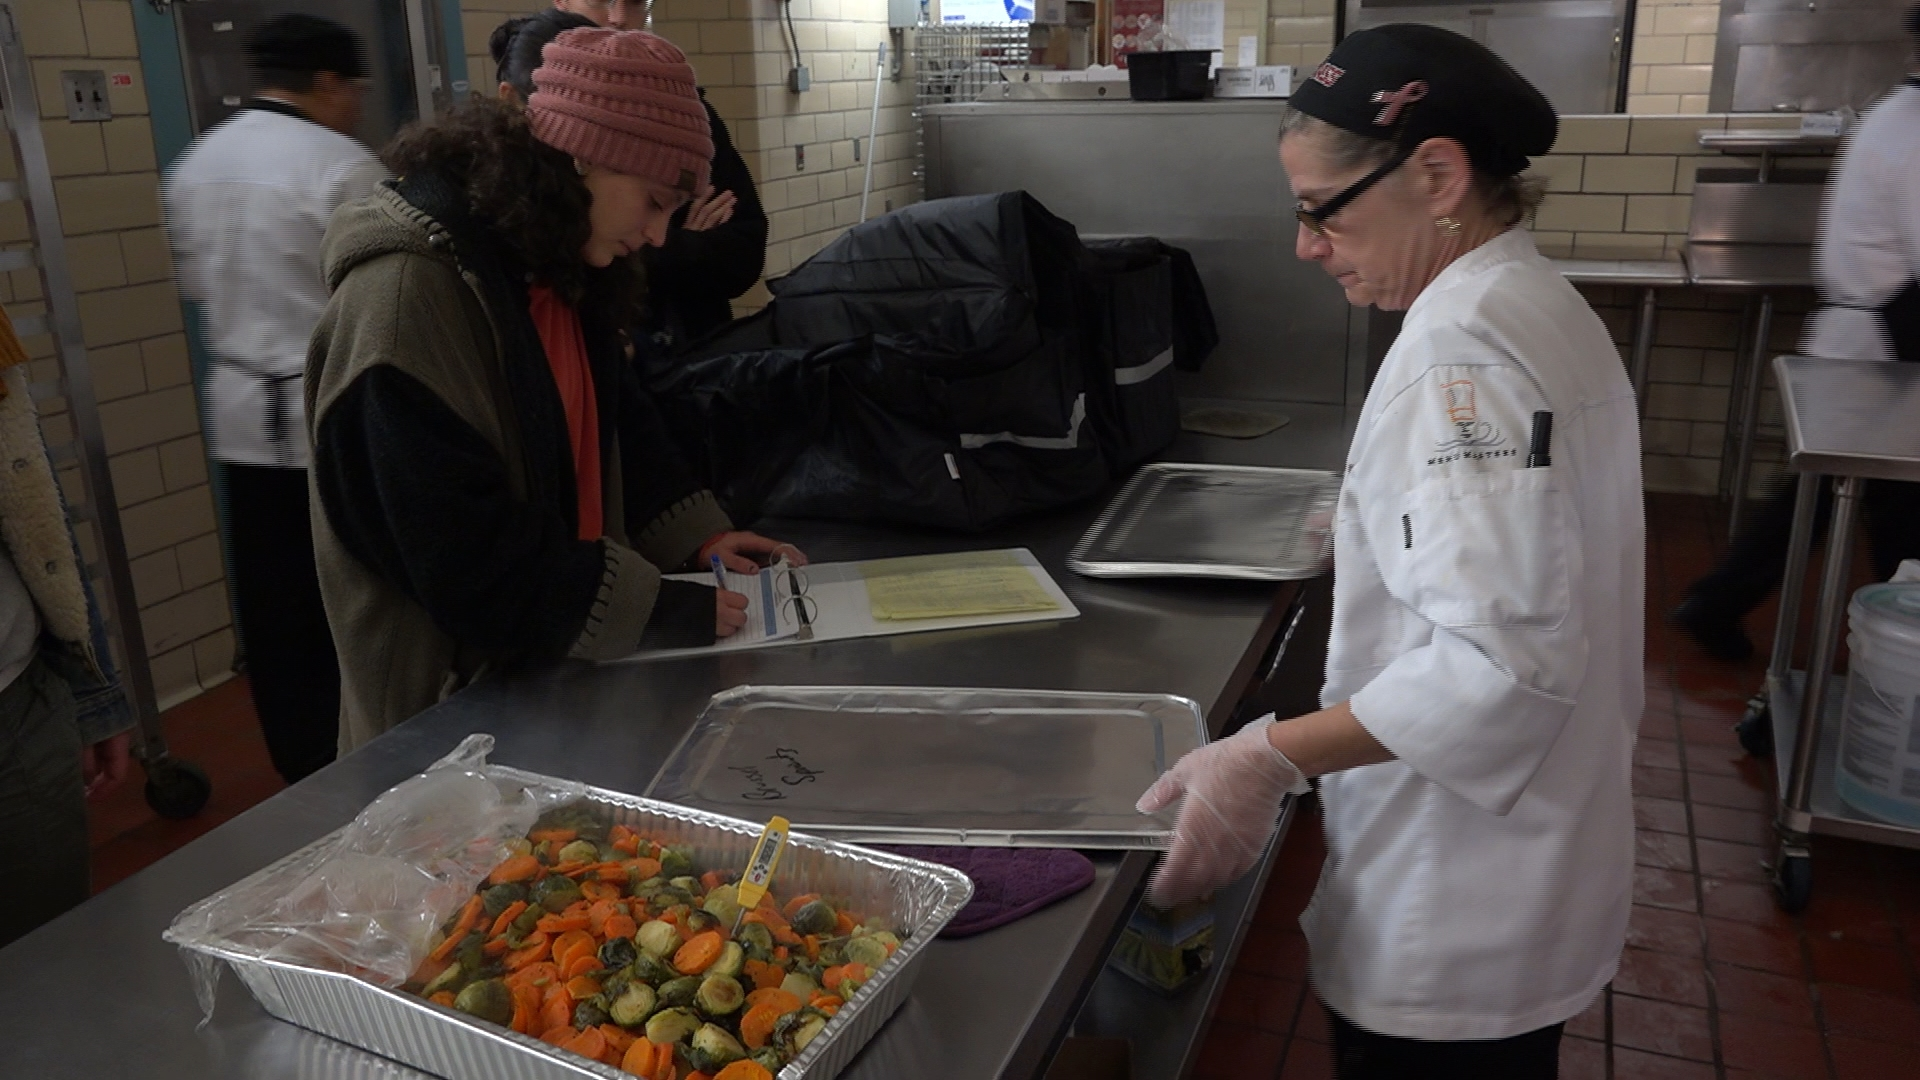 The student-led UMass Amherst Food Recovery Network takes leftover, un-eaten food from the campus dining halls to an Amherst homeless shelter.